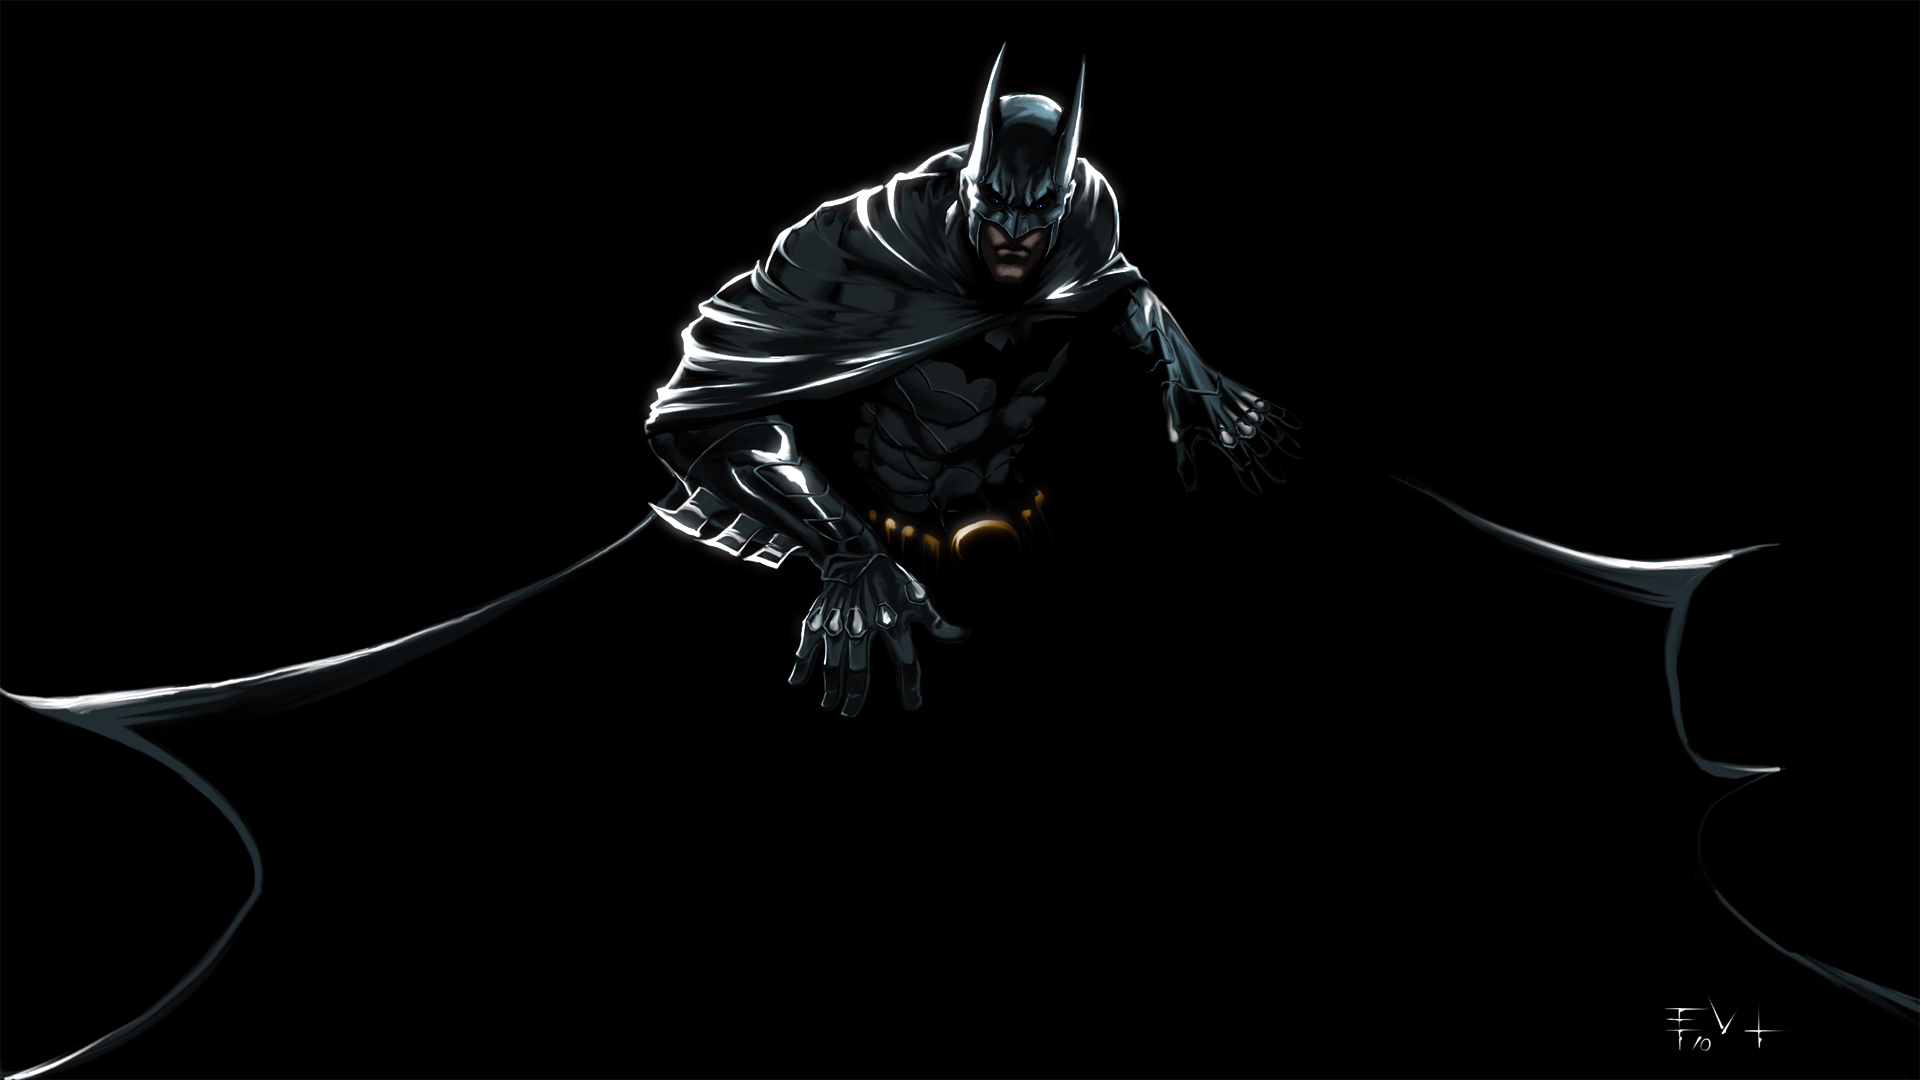 black-batman-wallpaper - windows mode